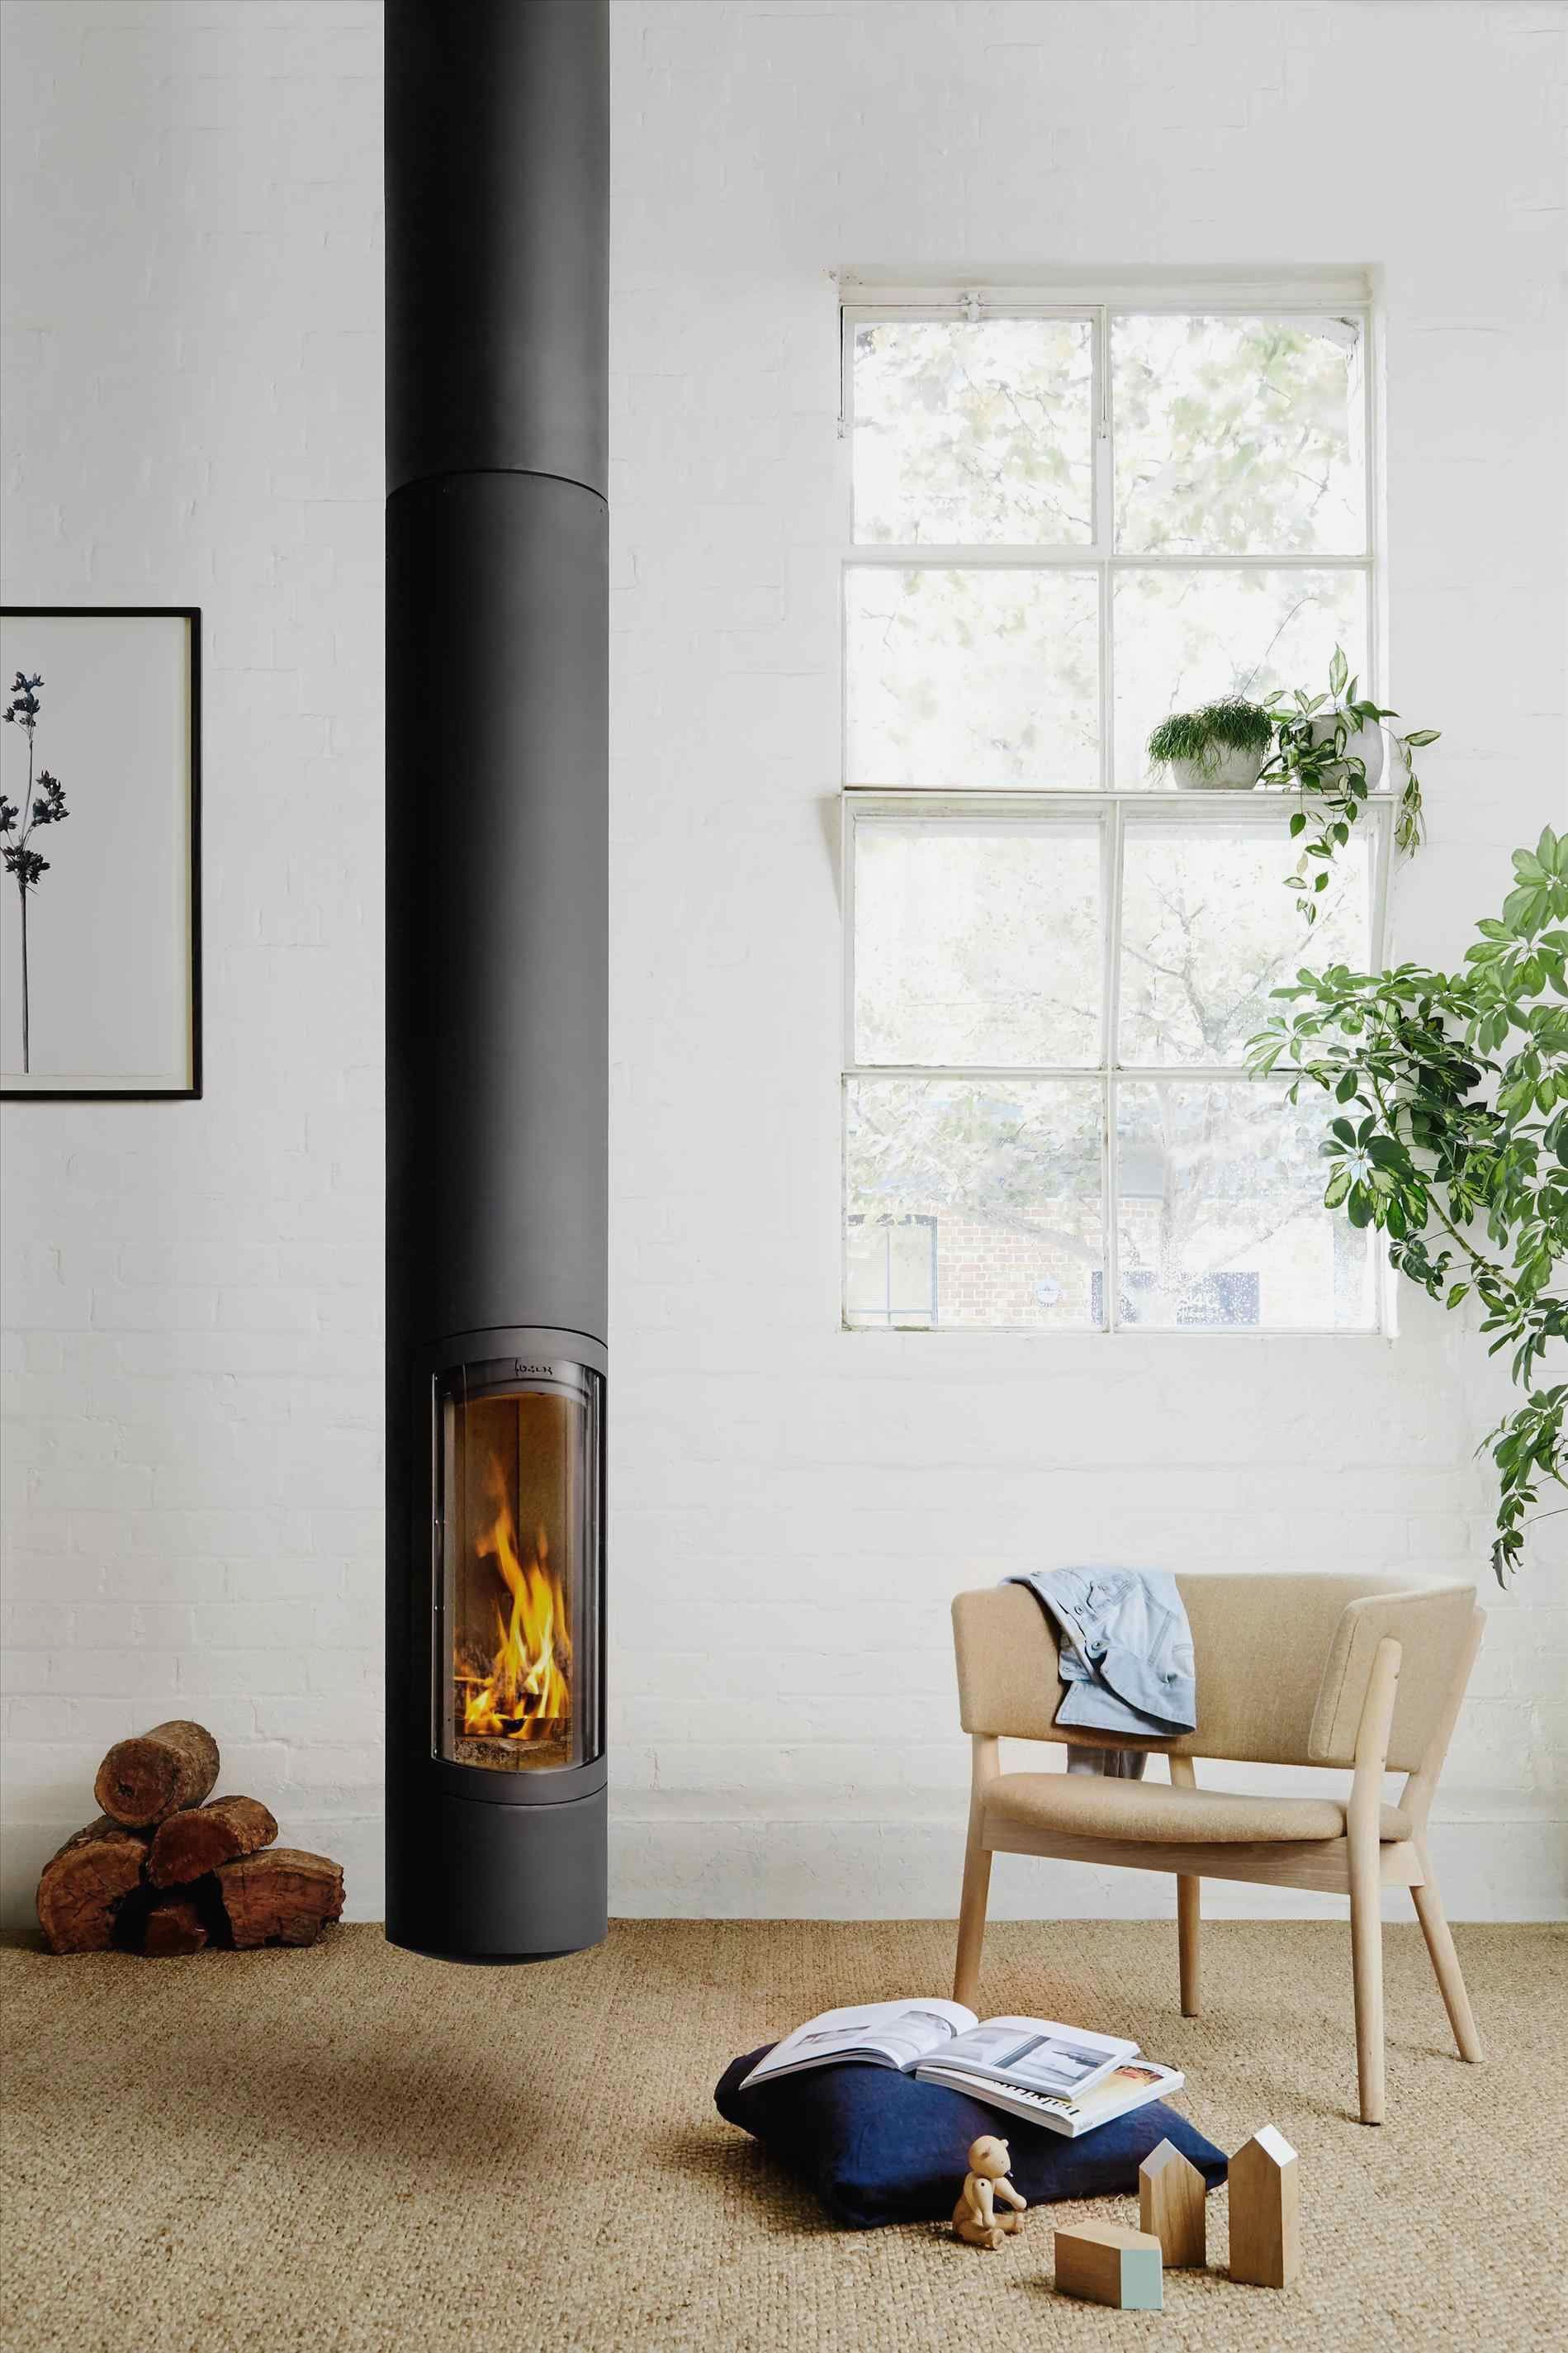 Kaminofen Skantherm Test Fireplace Kaminofen Excellent Kaminofen Elements Skantherm Wir